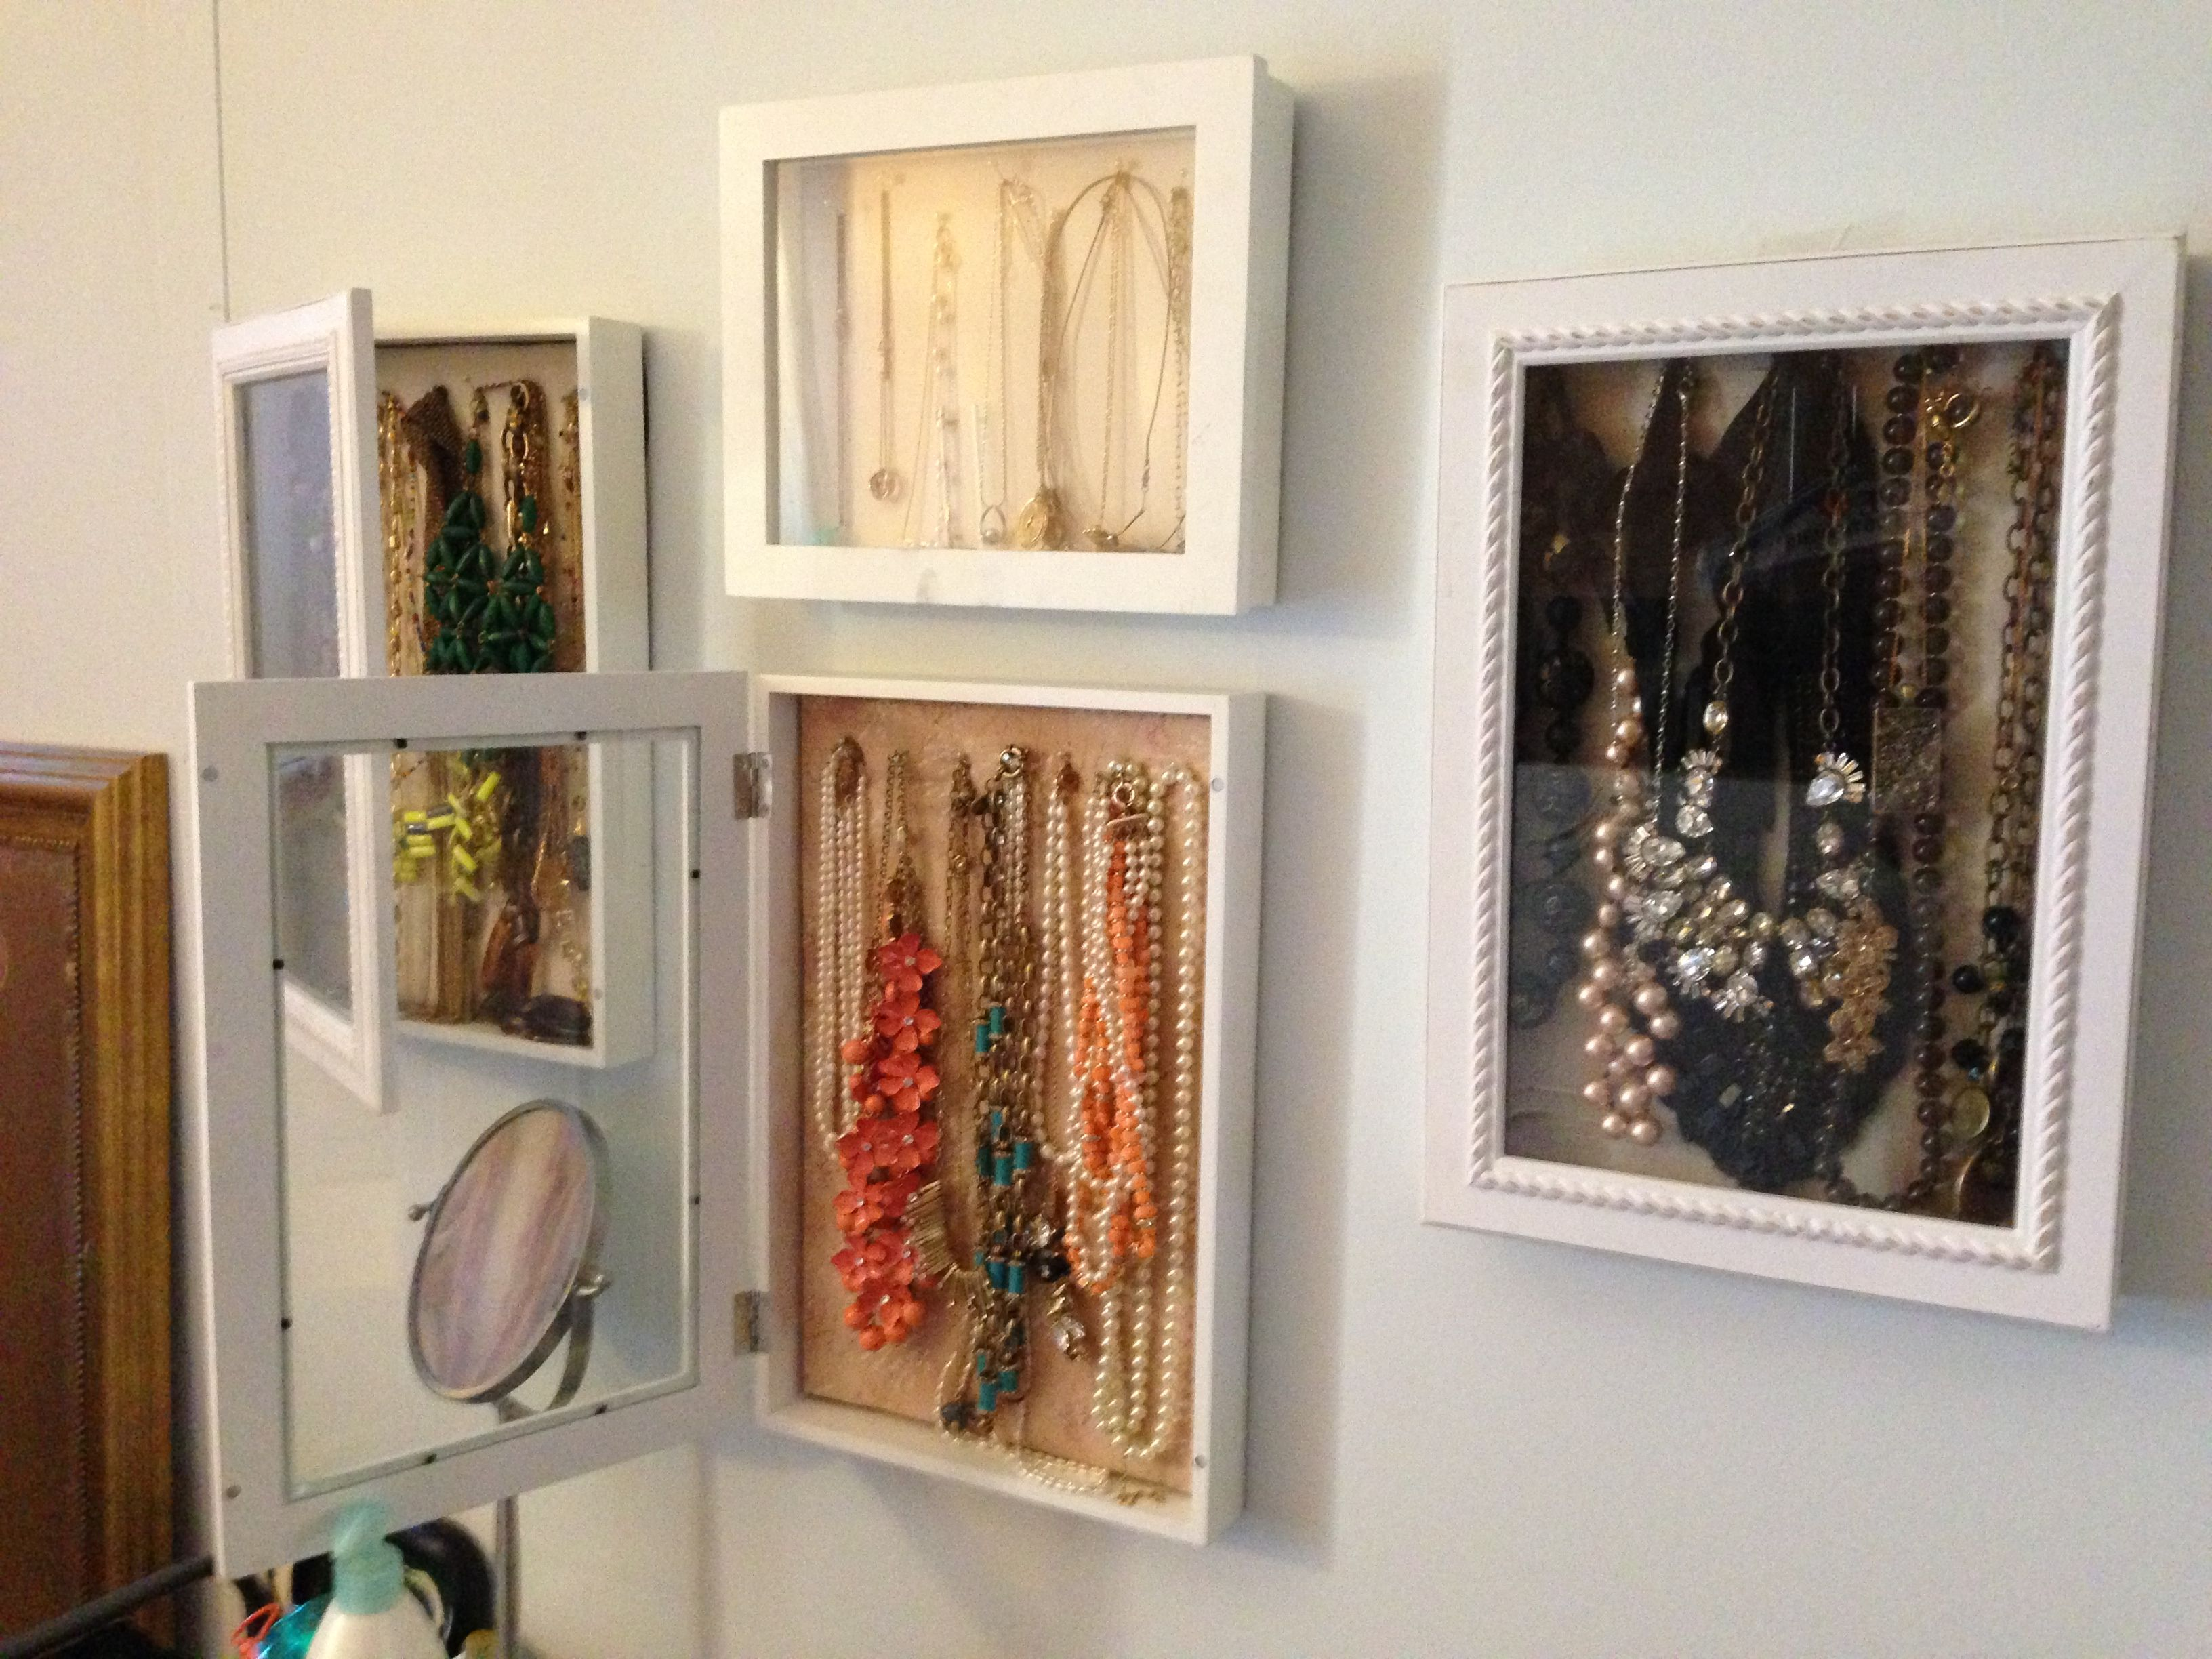 DIY jewelry storagedisplays Hinged shadow box frames found at TJ